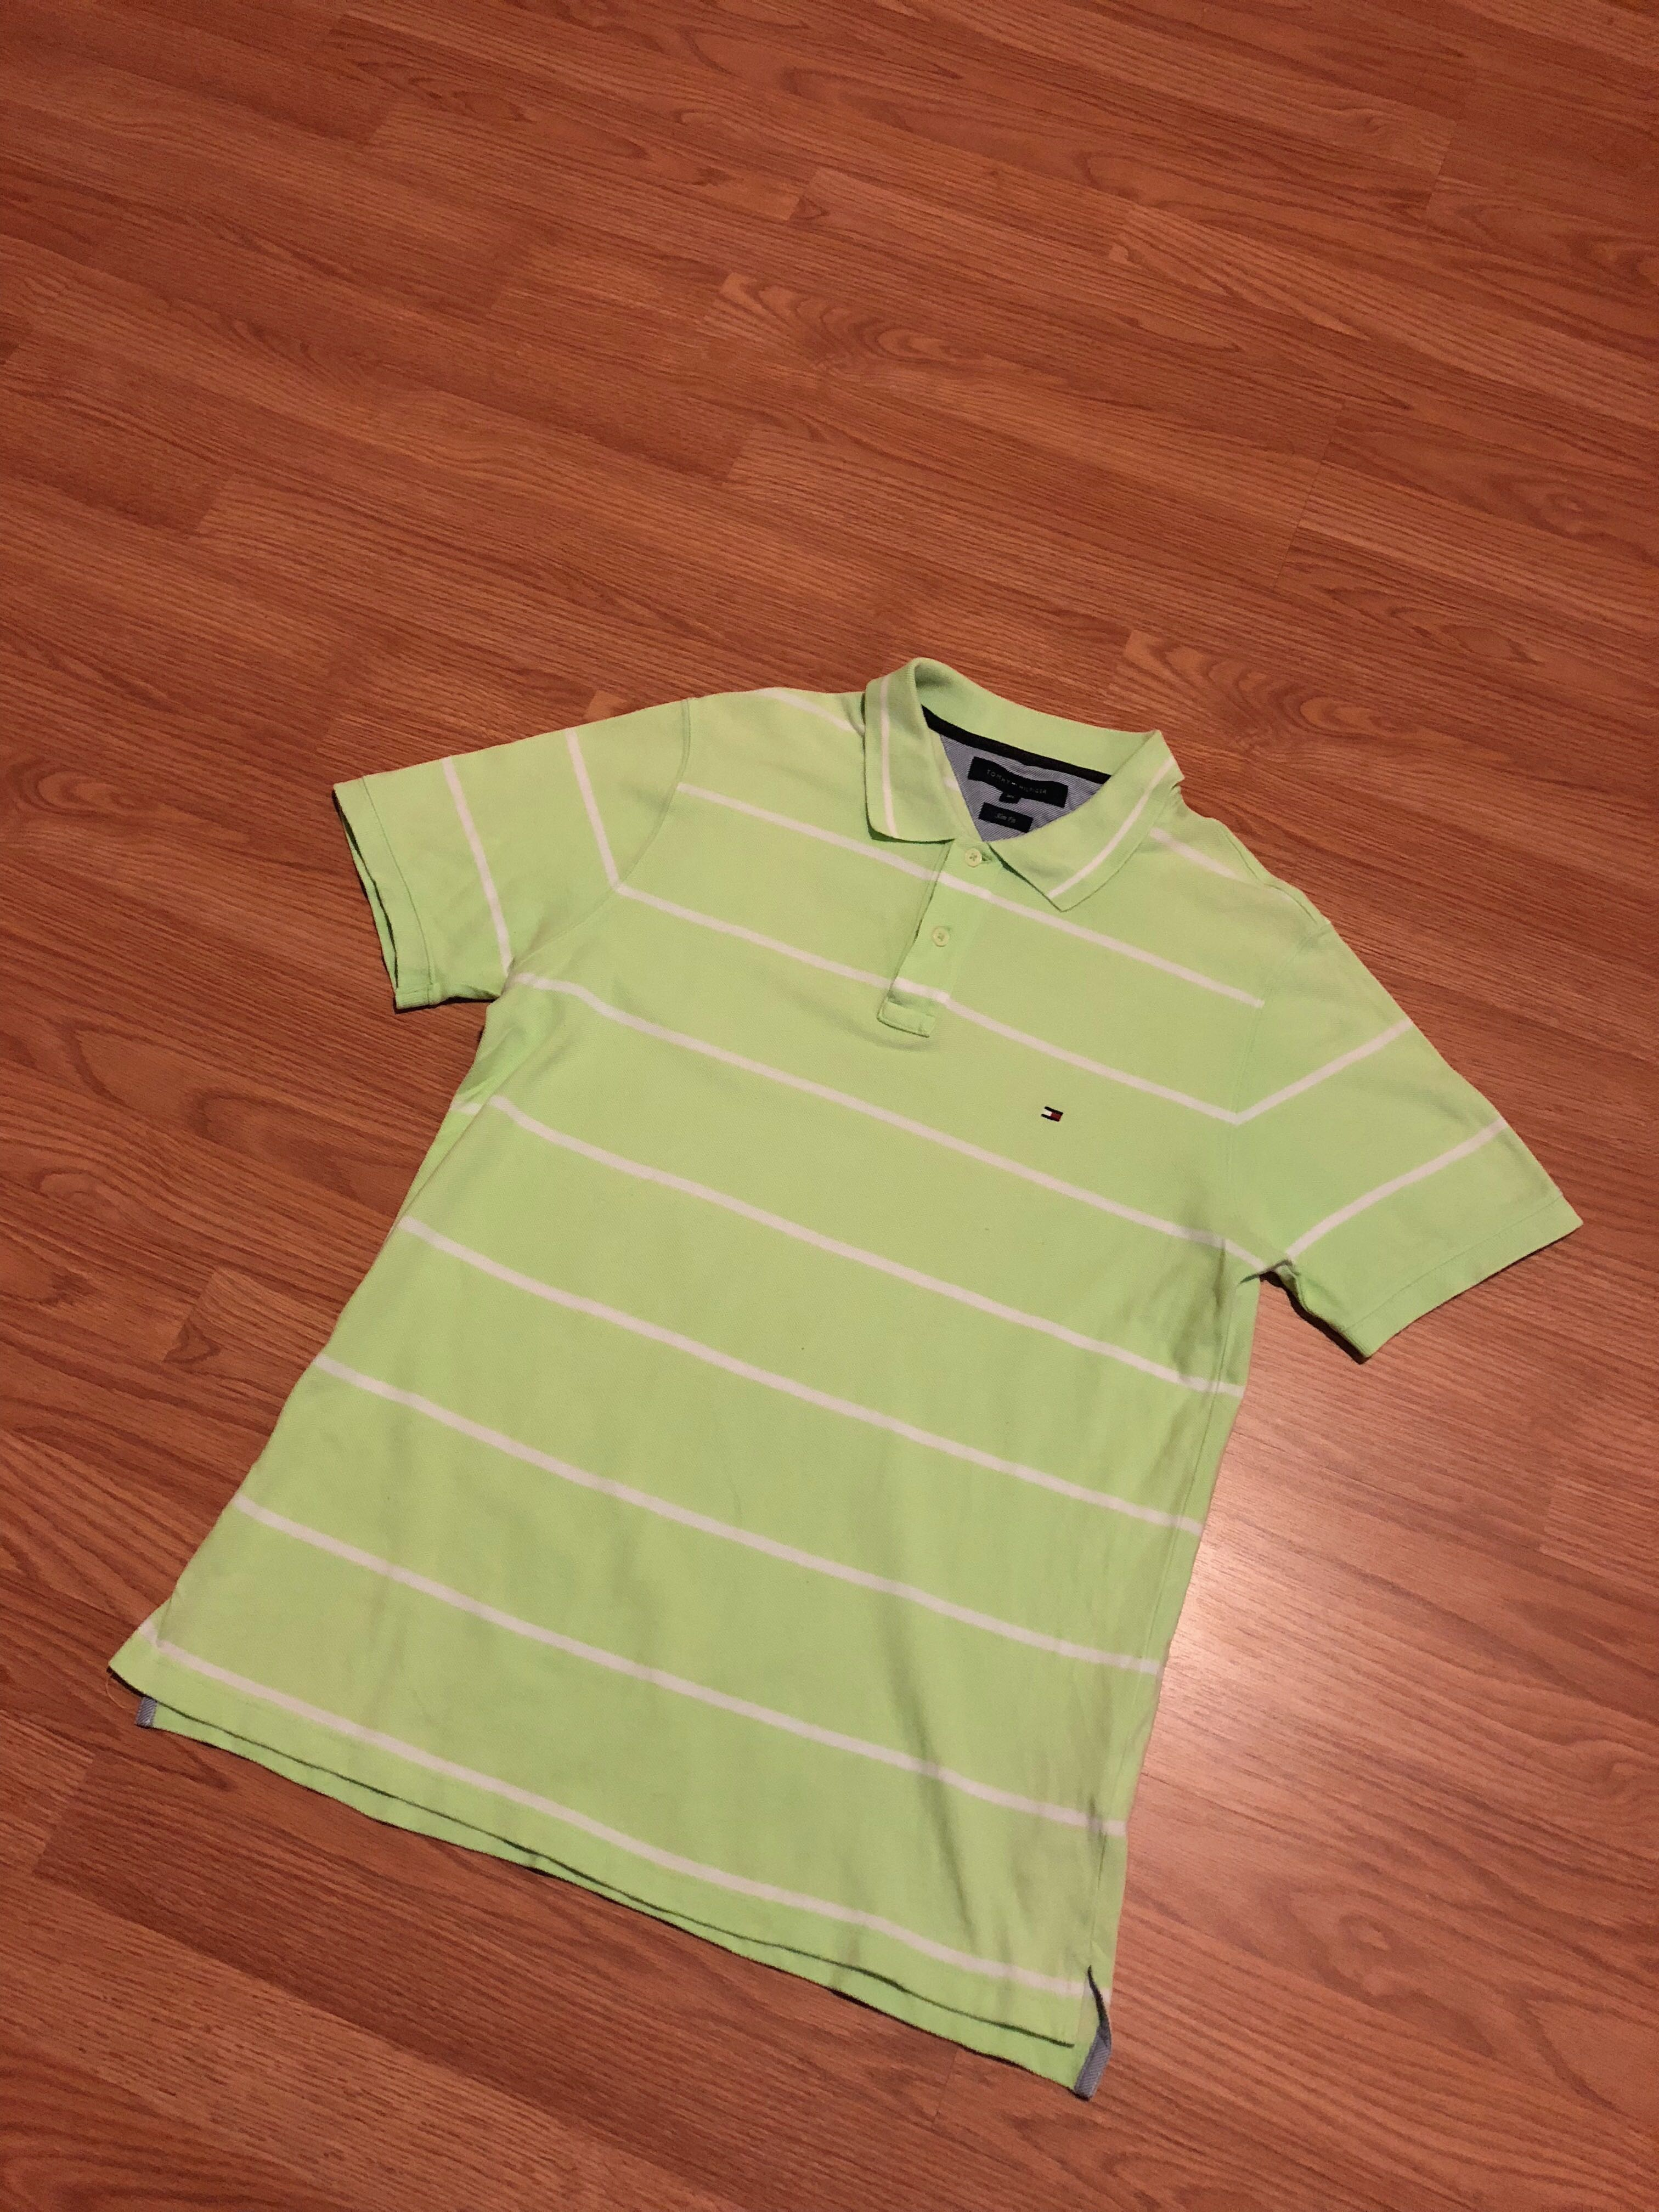 ac5d013f Vintage Tommy Hilfiger polo, Men's Fashion, Clothes, Tops on Carousell